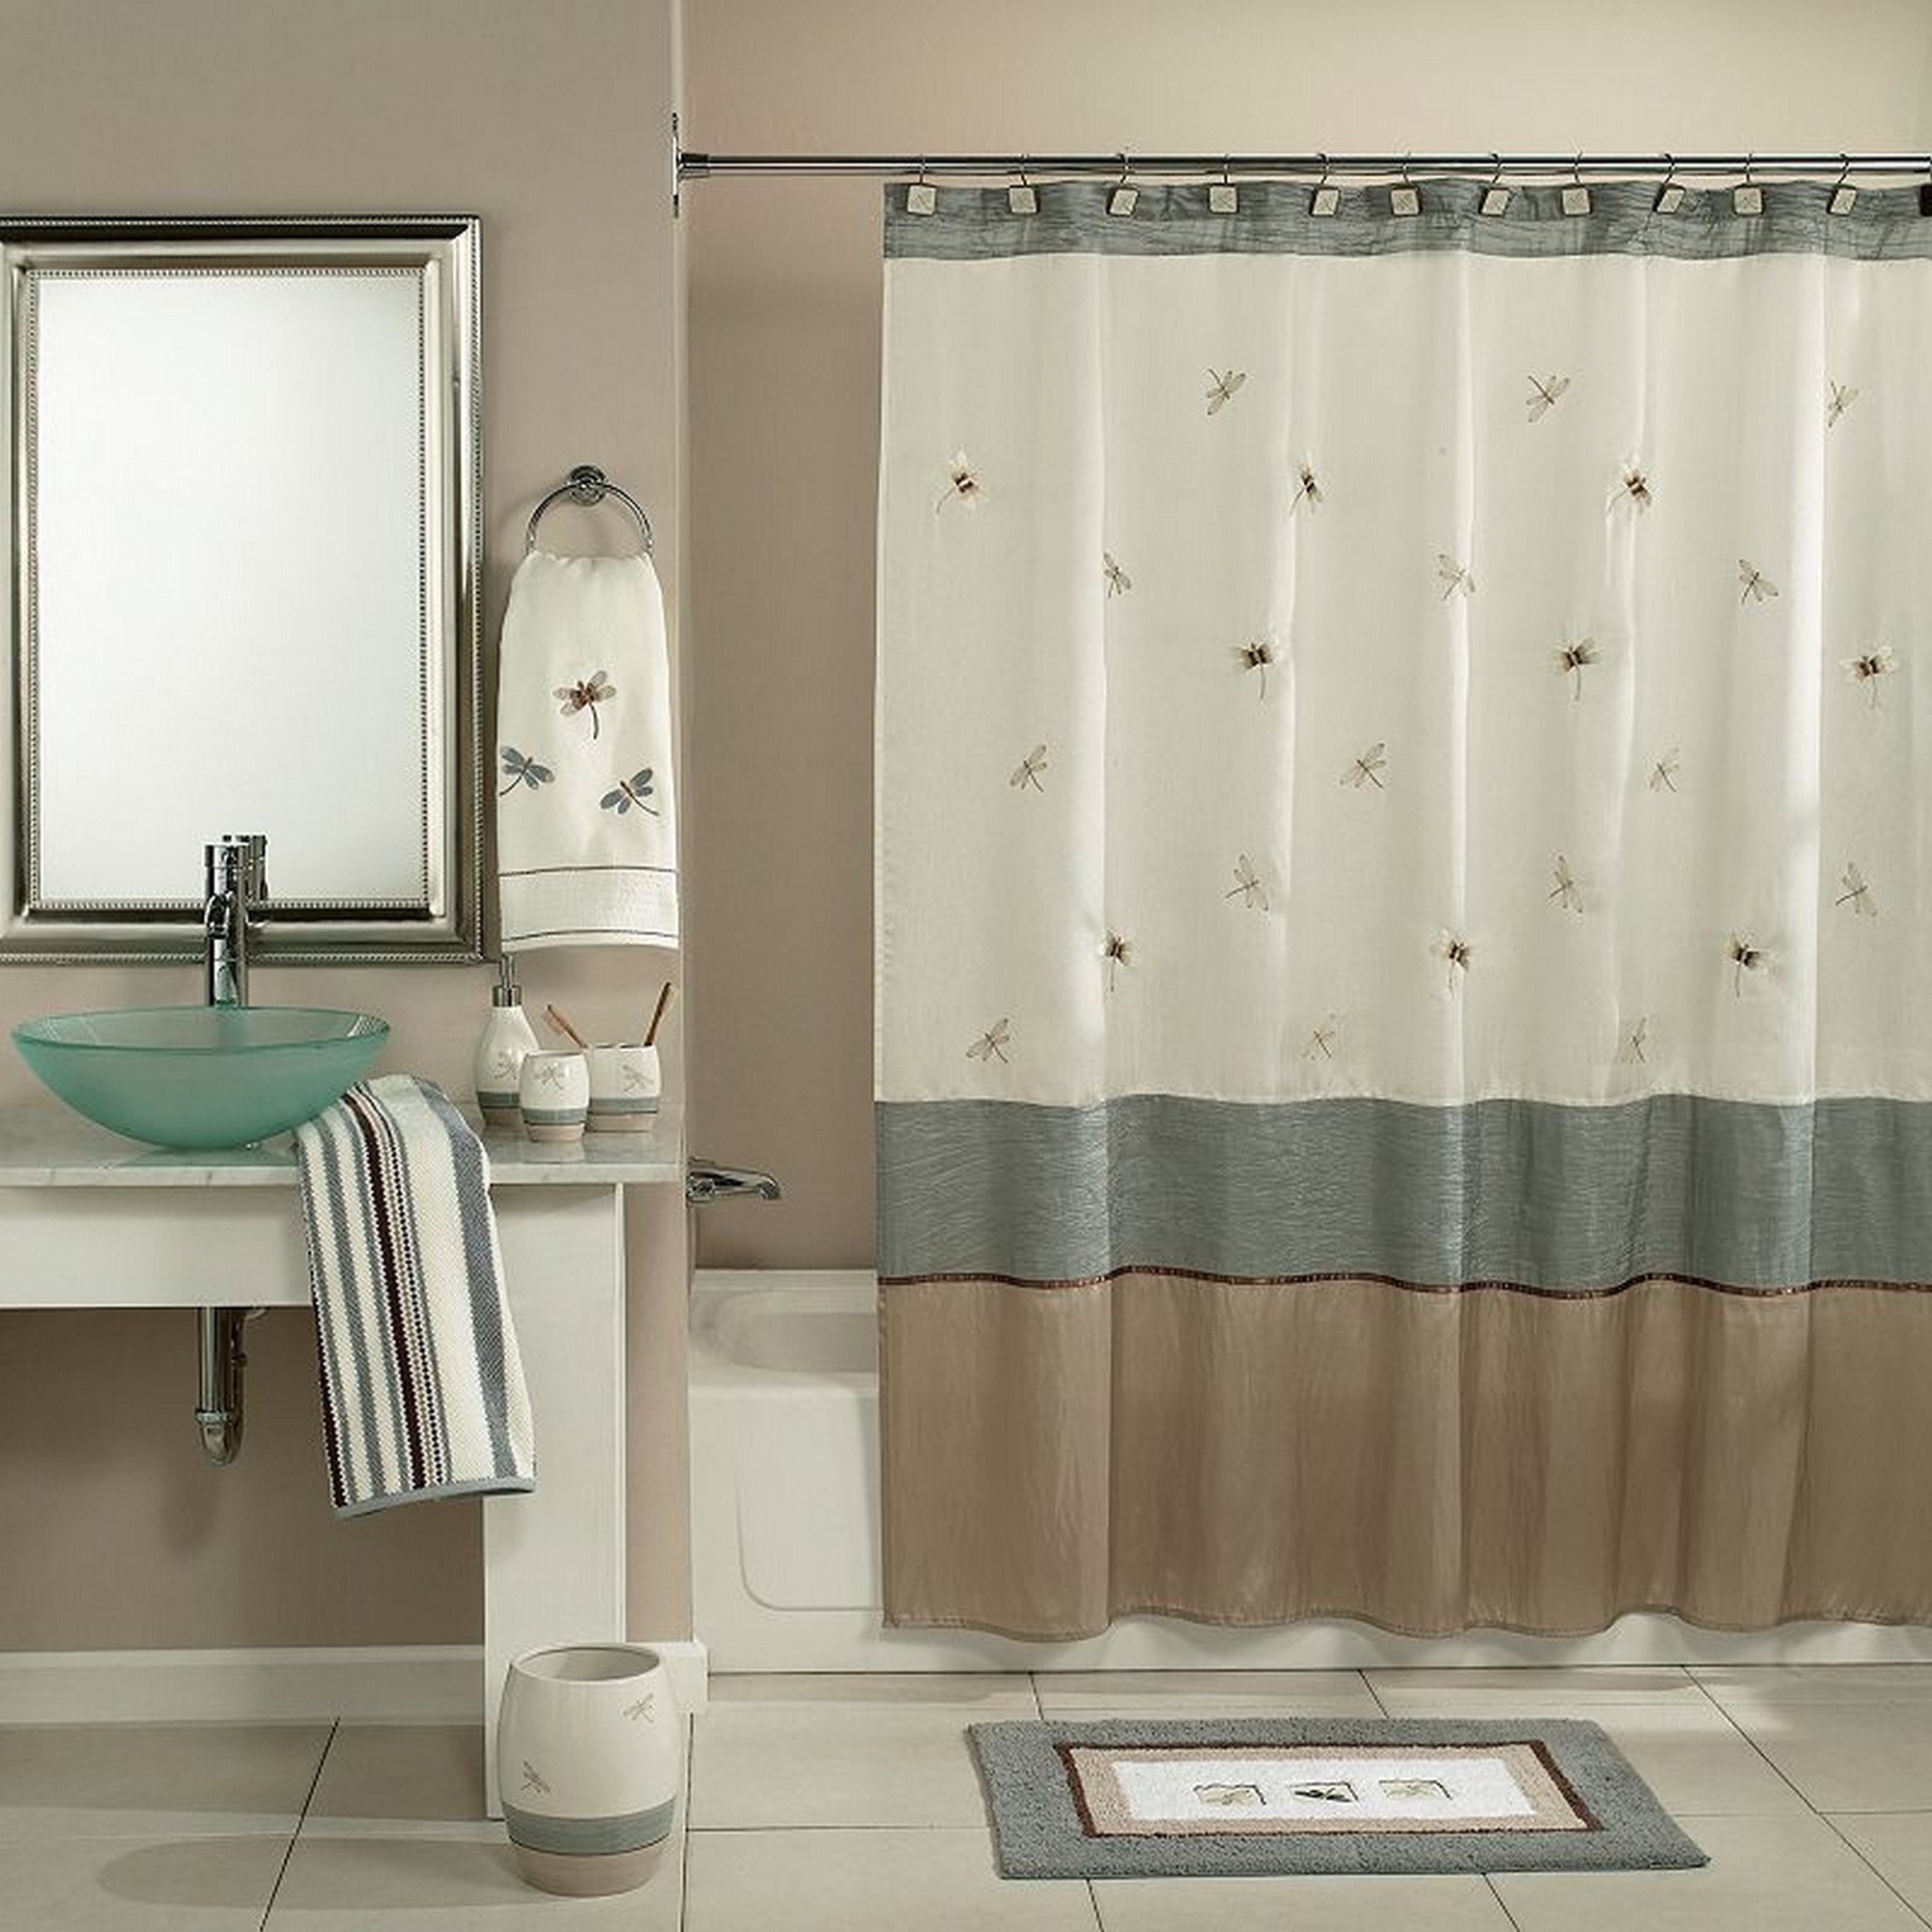 White Room Darkening Curtains | Kohls Drapes | Cheap Curtains and Drapes